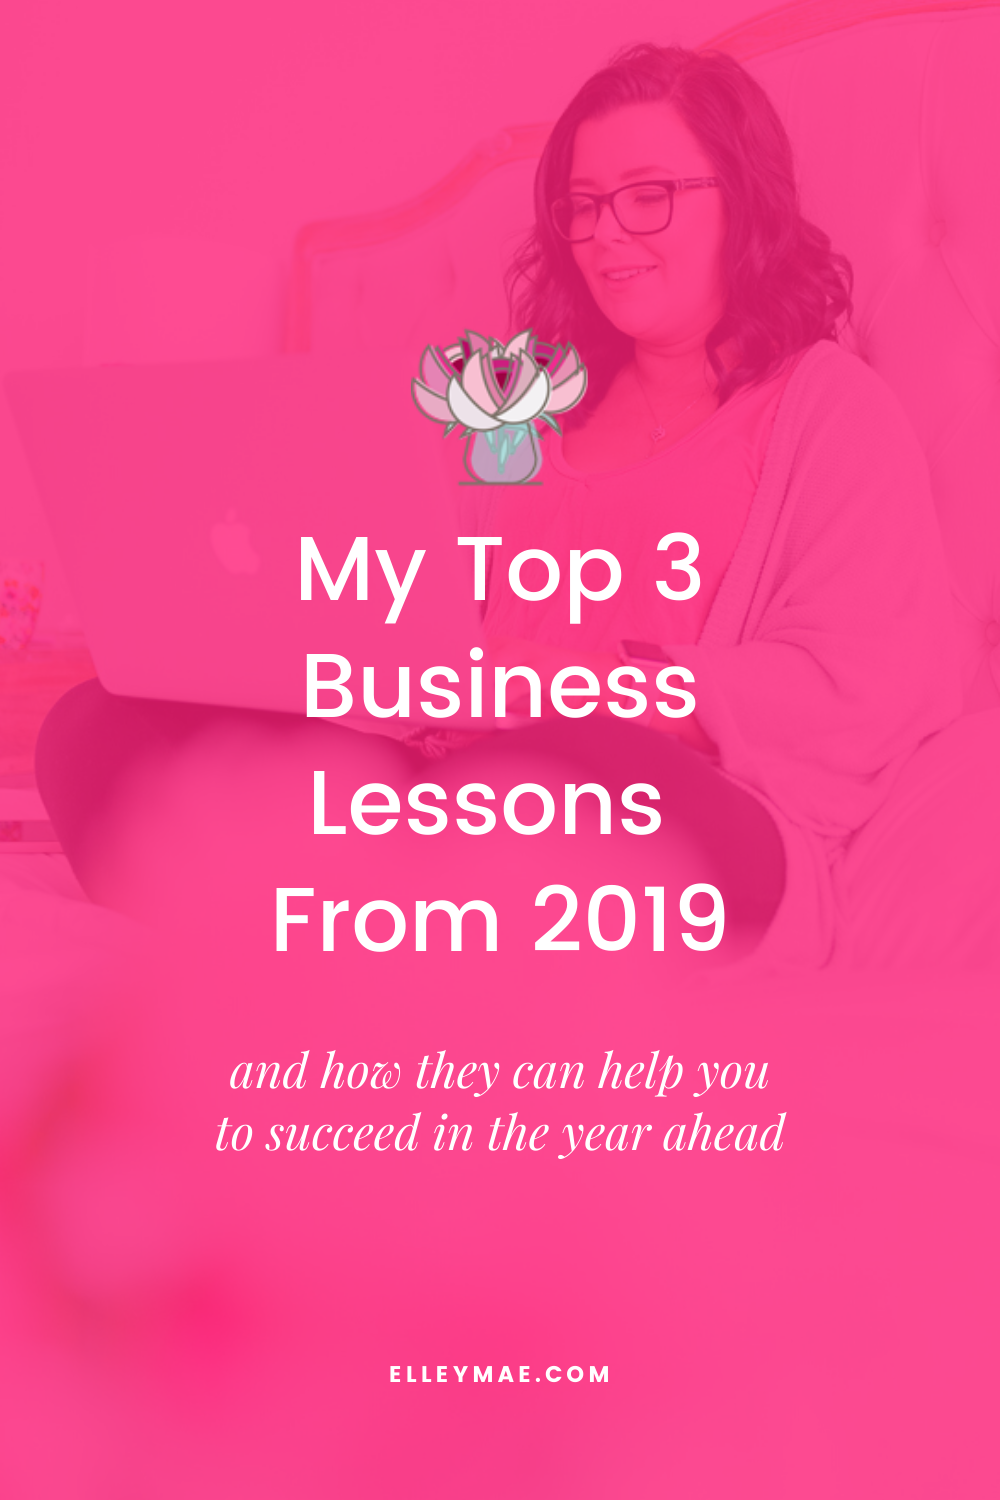 My Top 3 Business Lessons From 2019